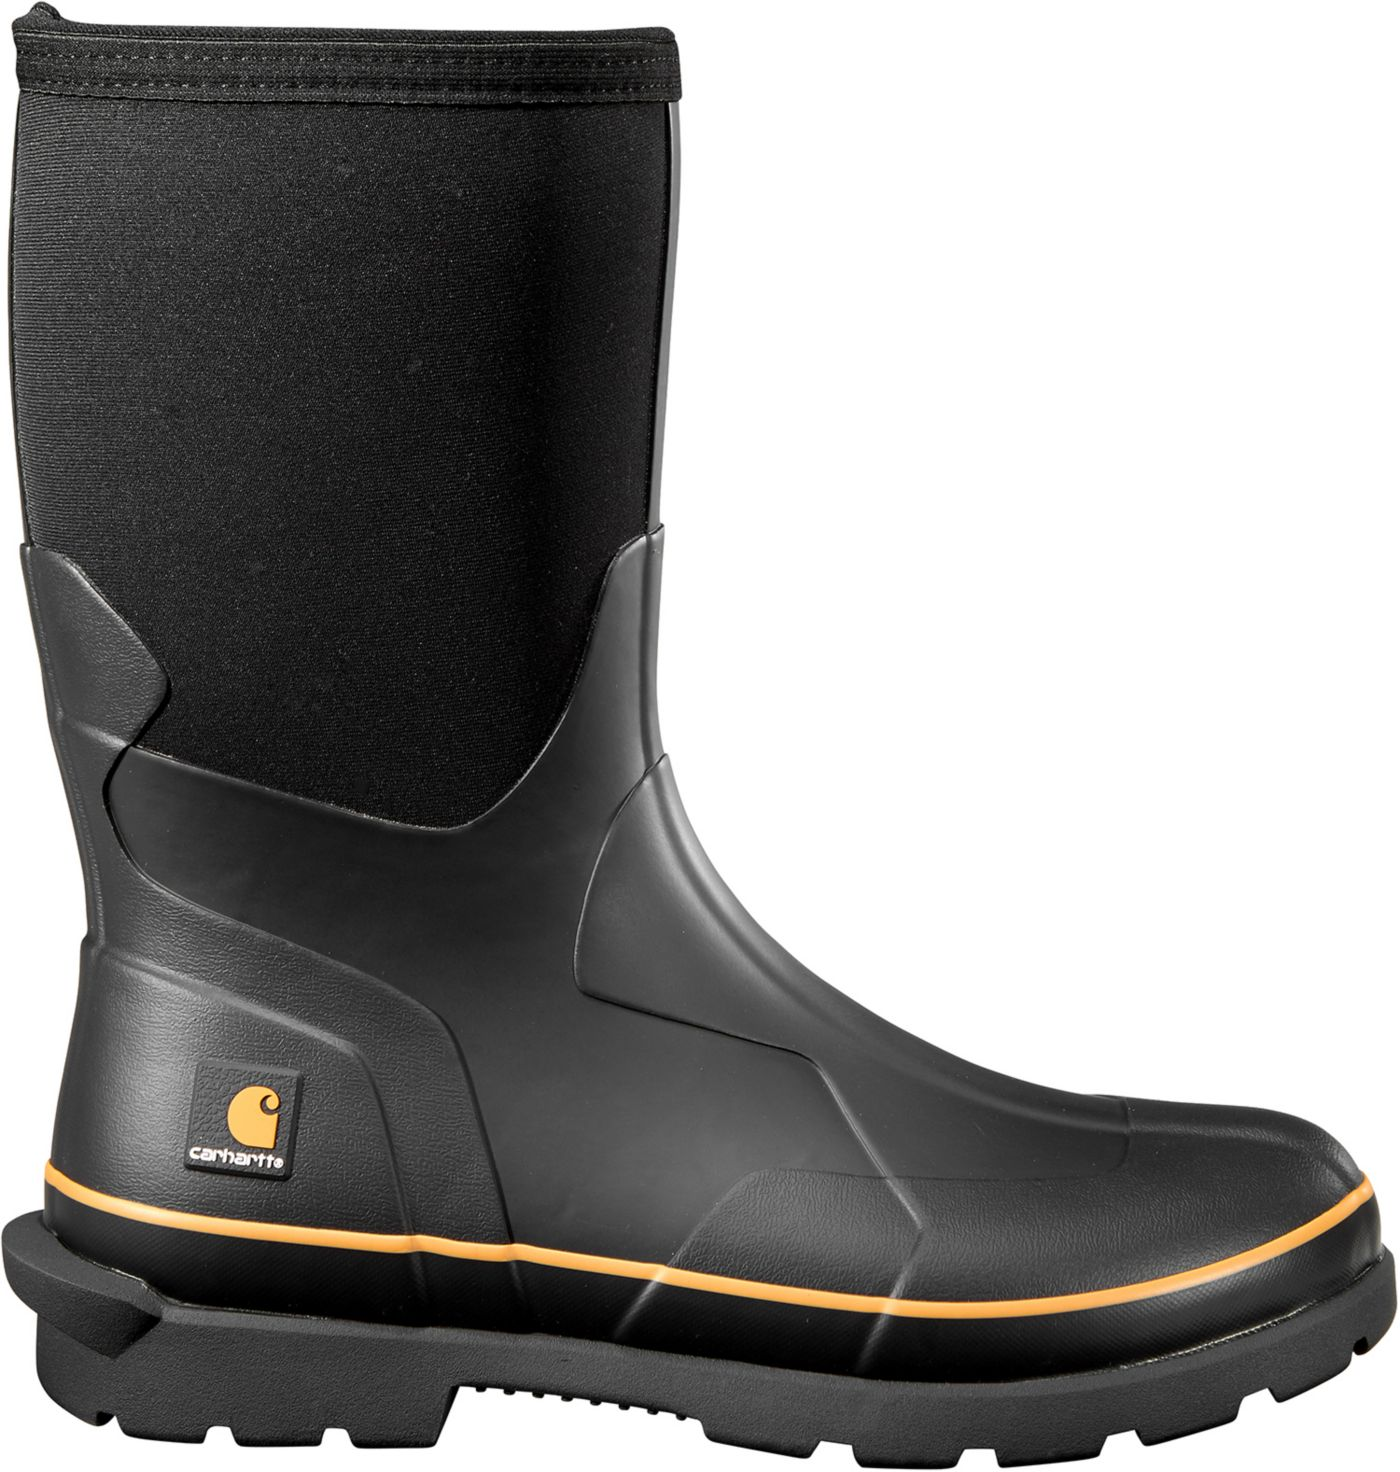 Carhartt Men's 10'' Rubber Boots